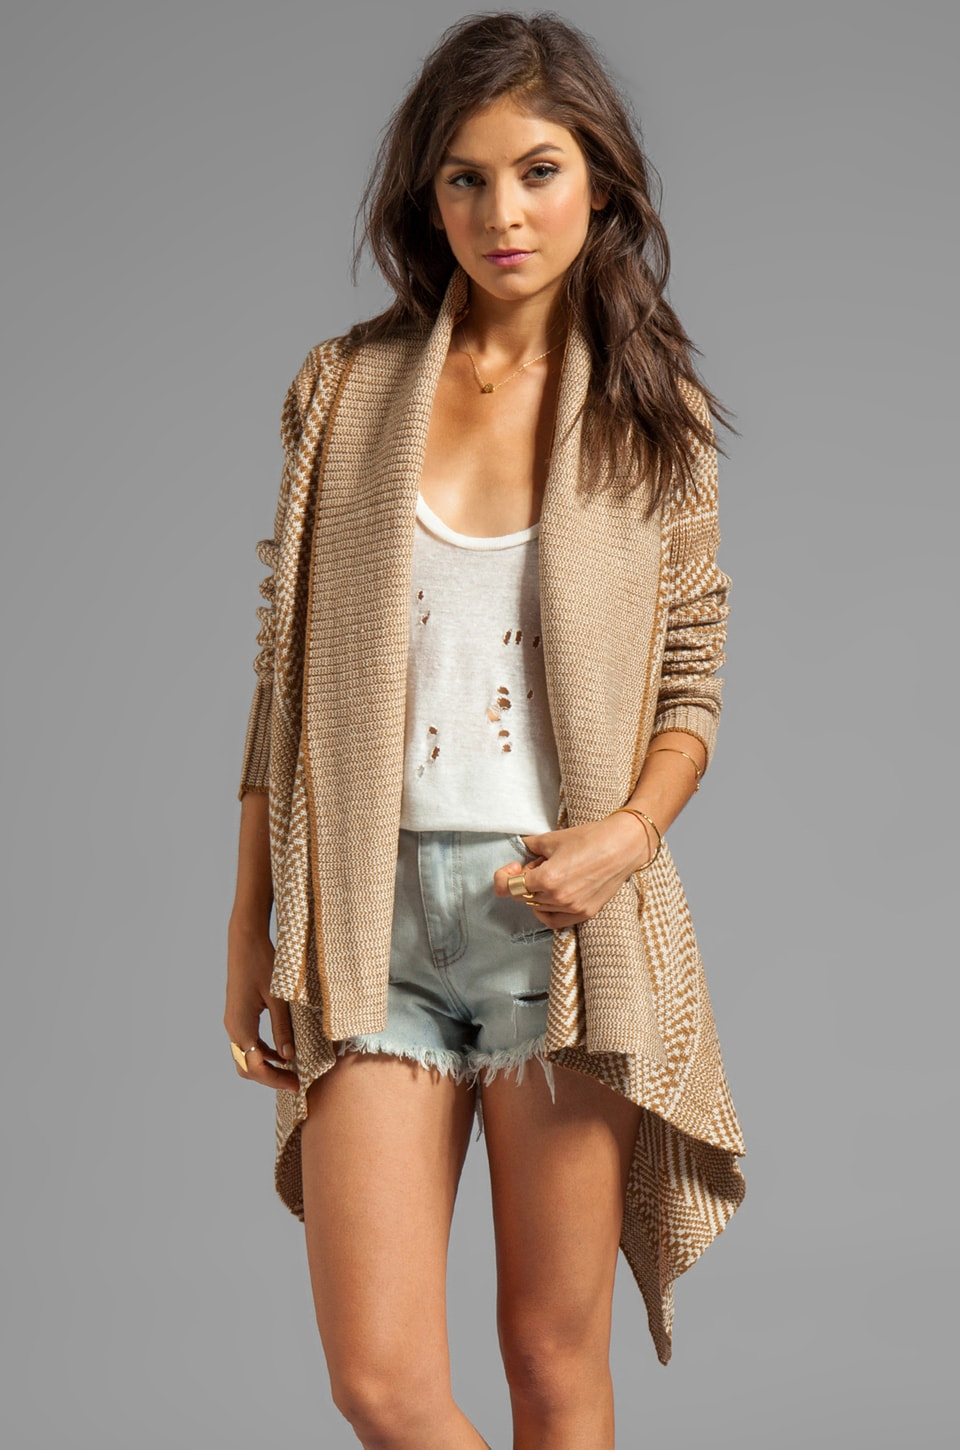 BB Dakota Kali Patterned Cardigan in Camel Hair Brown